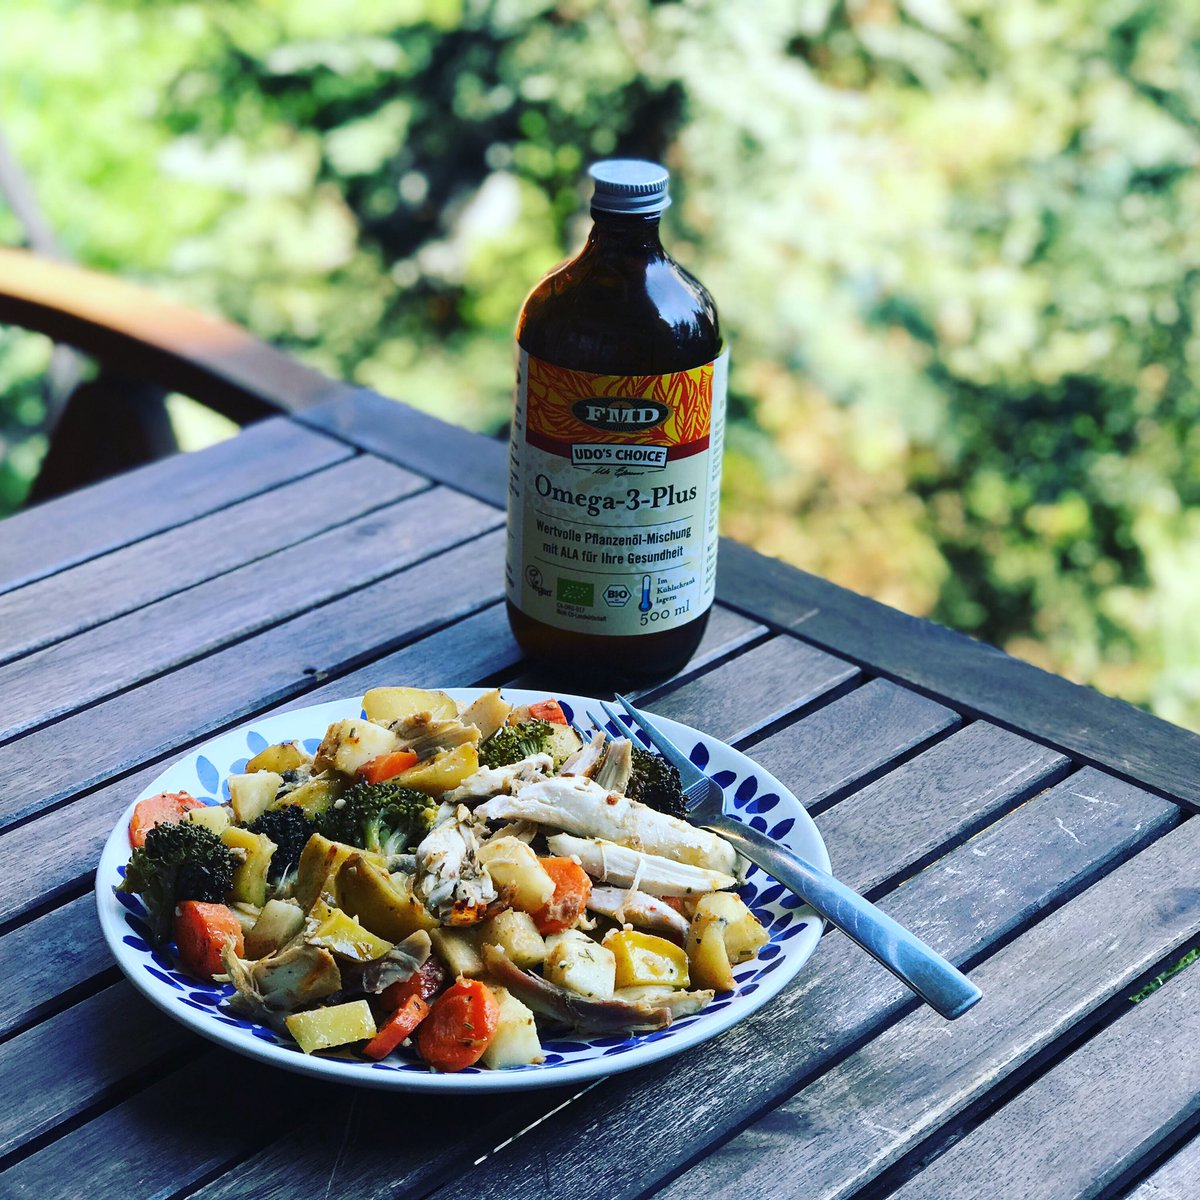 Healthy lunch ❤️ organic grilled chicken, baked potatoes, grilled vegetable, spoon full of Udo's Oil Blend (Omega 3), herbs to taste @florahealthy @OKRILL3 @UdosChoiceCzech #lunch #healthy #udoschoiceczech #omega3 #organic #oilthemachine #beflorahealthy #fitness #HealthyFood